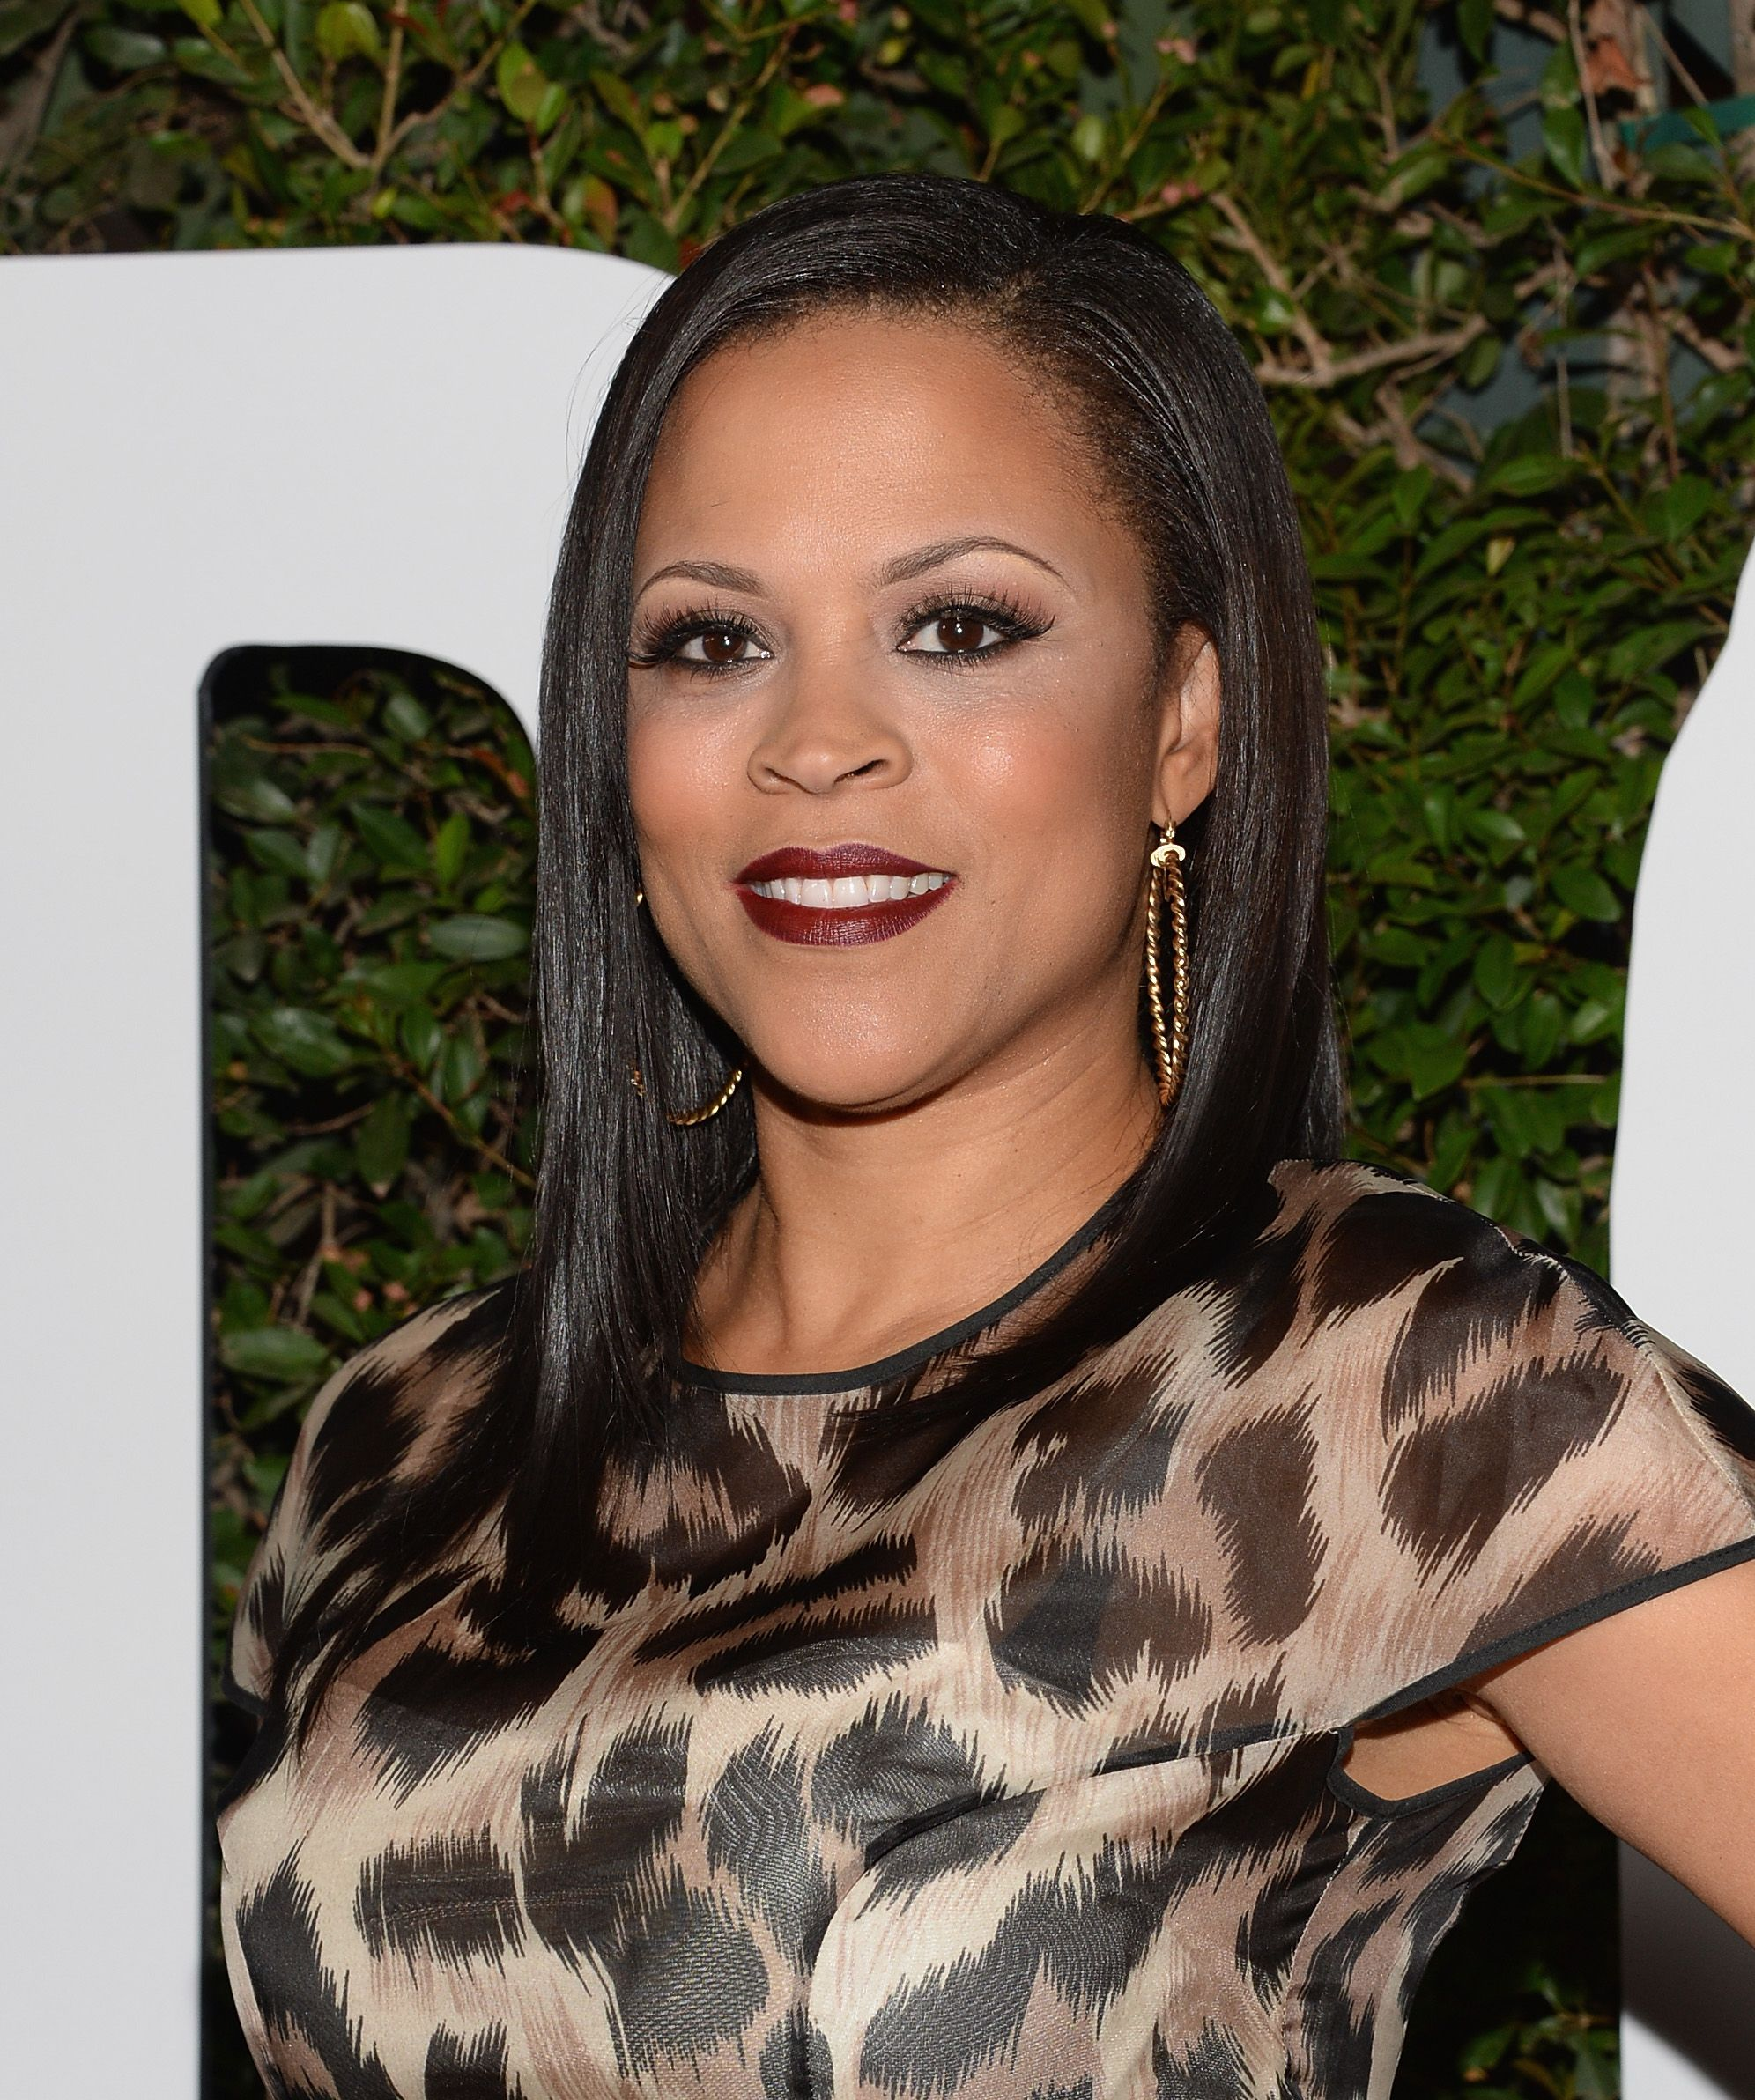 """TV personality Shaunie O'Neal attending the """"Mandela: Long Walk to Freedom"""" premiere on November 11, 2013 in California 